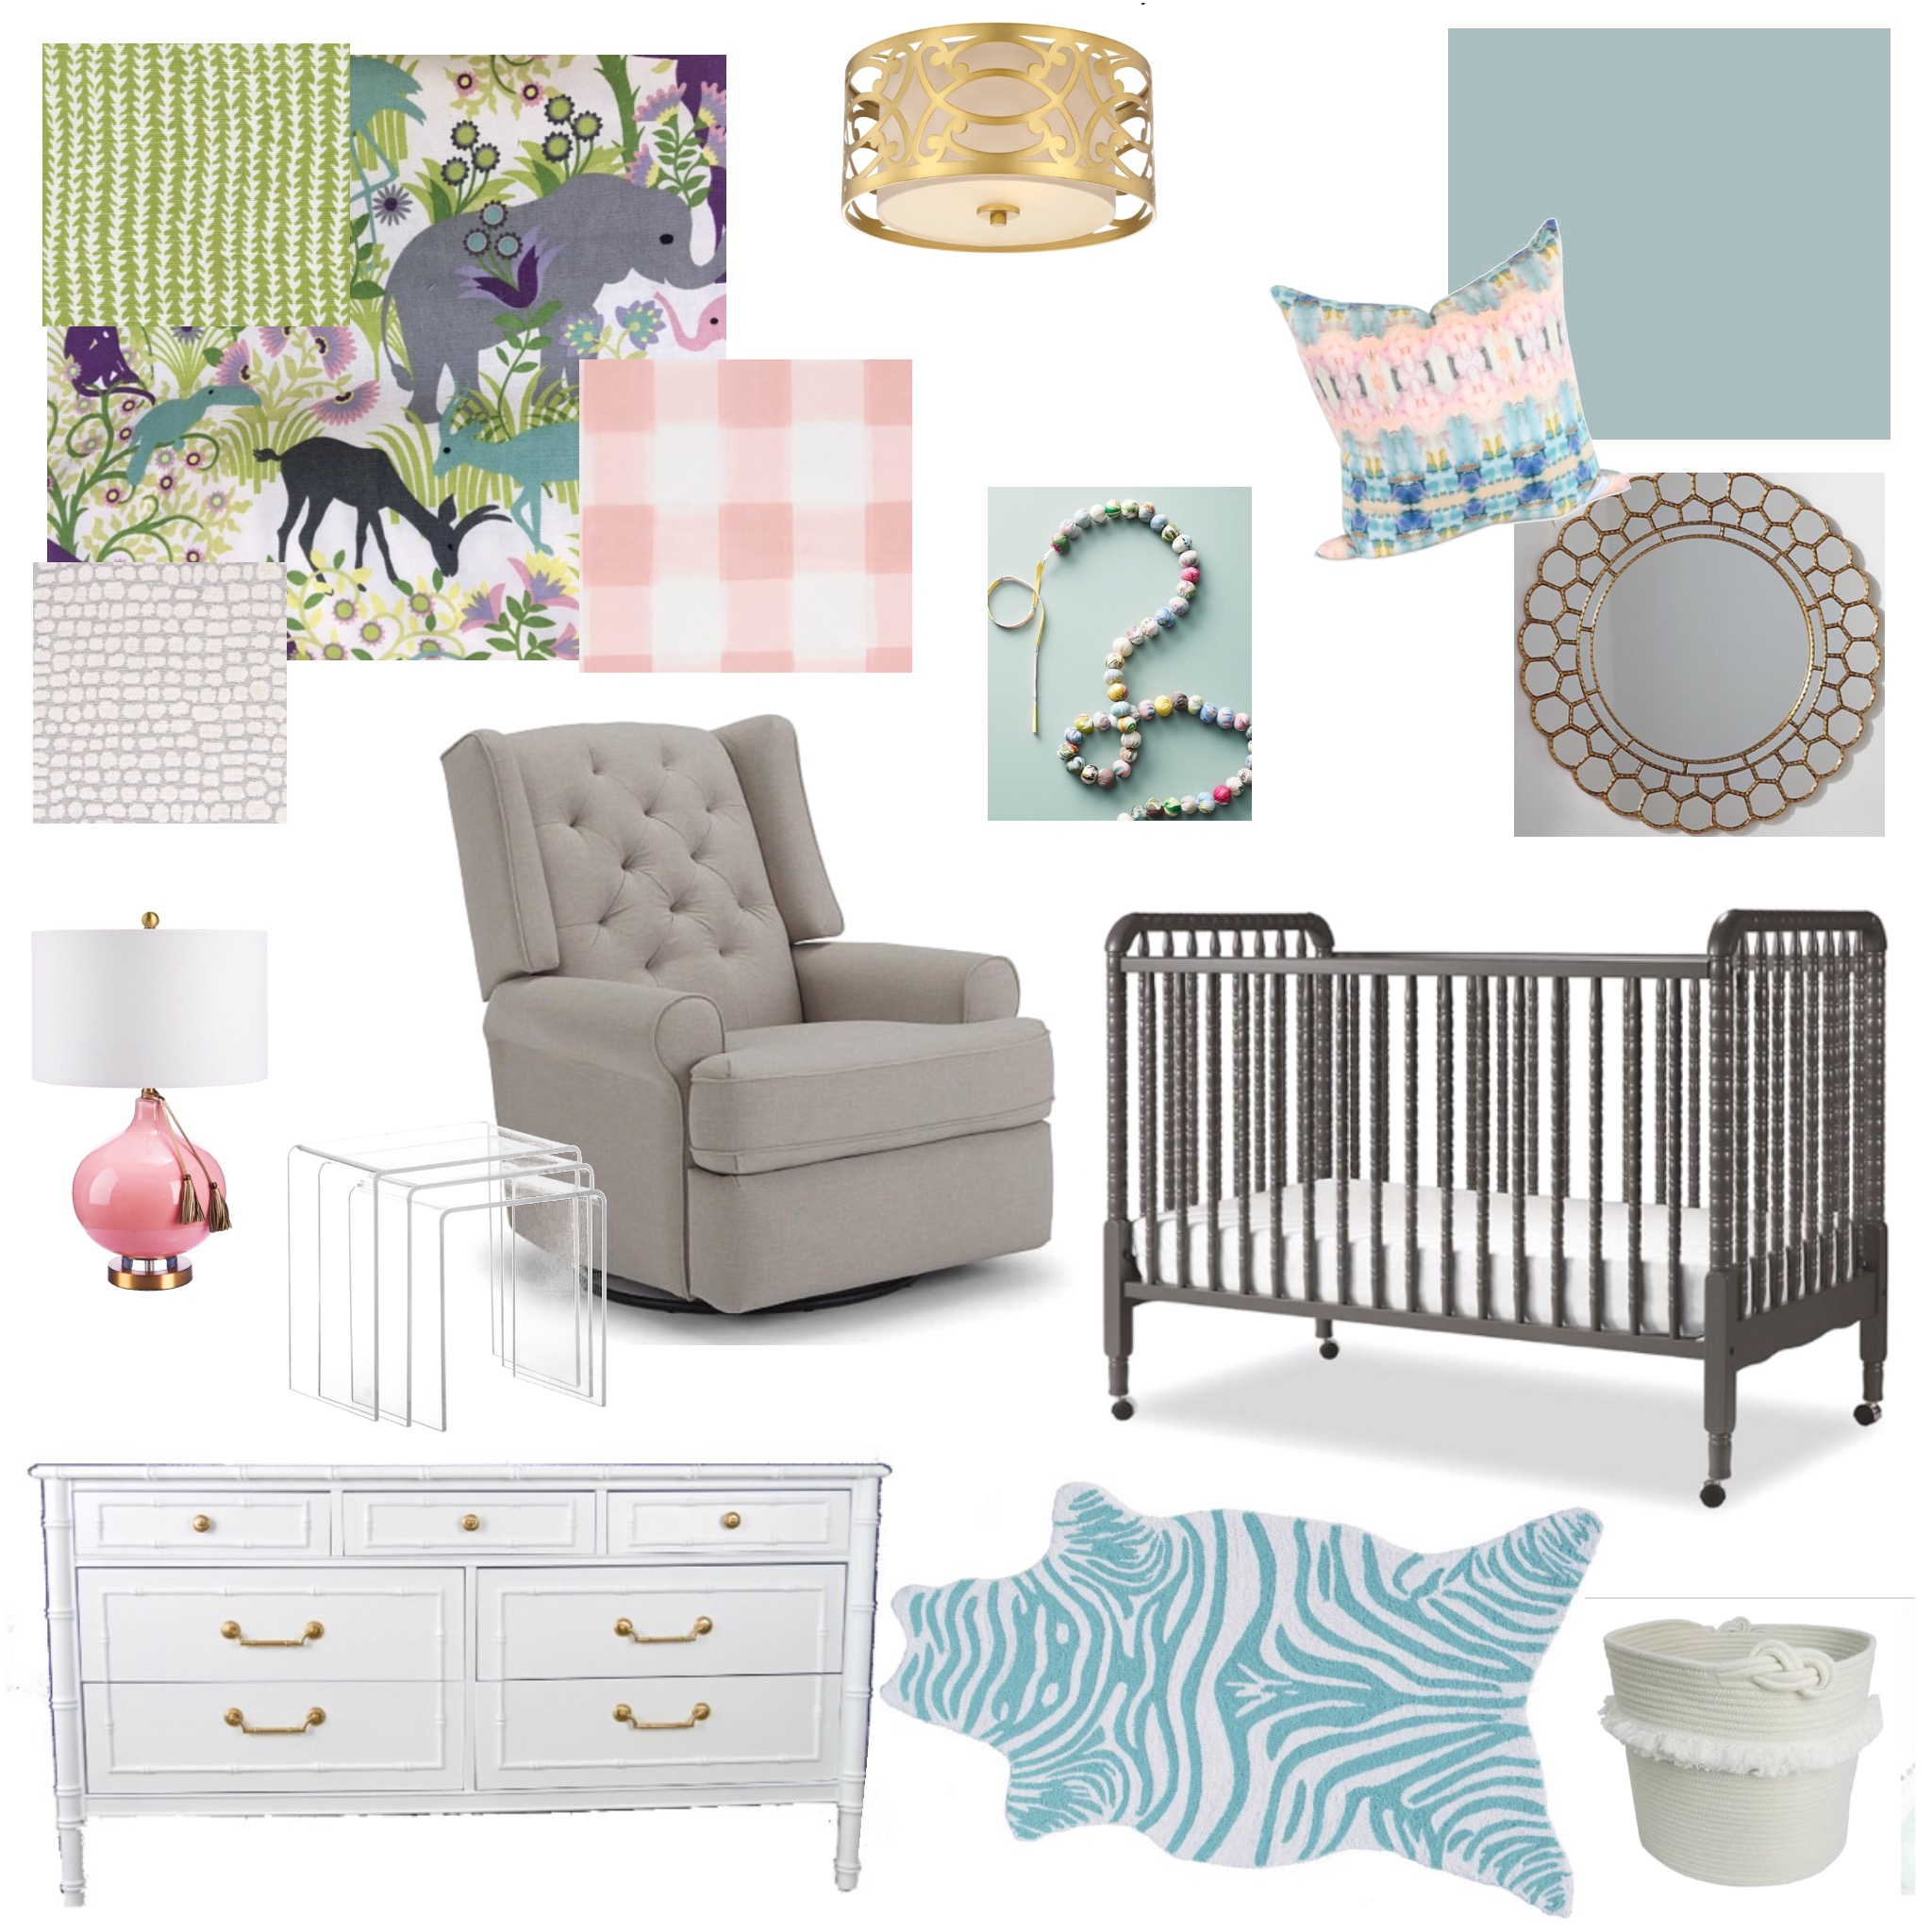 Version 2: Girl Nursery